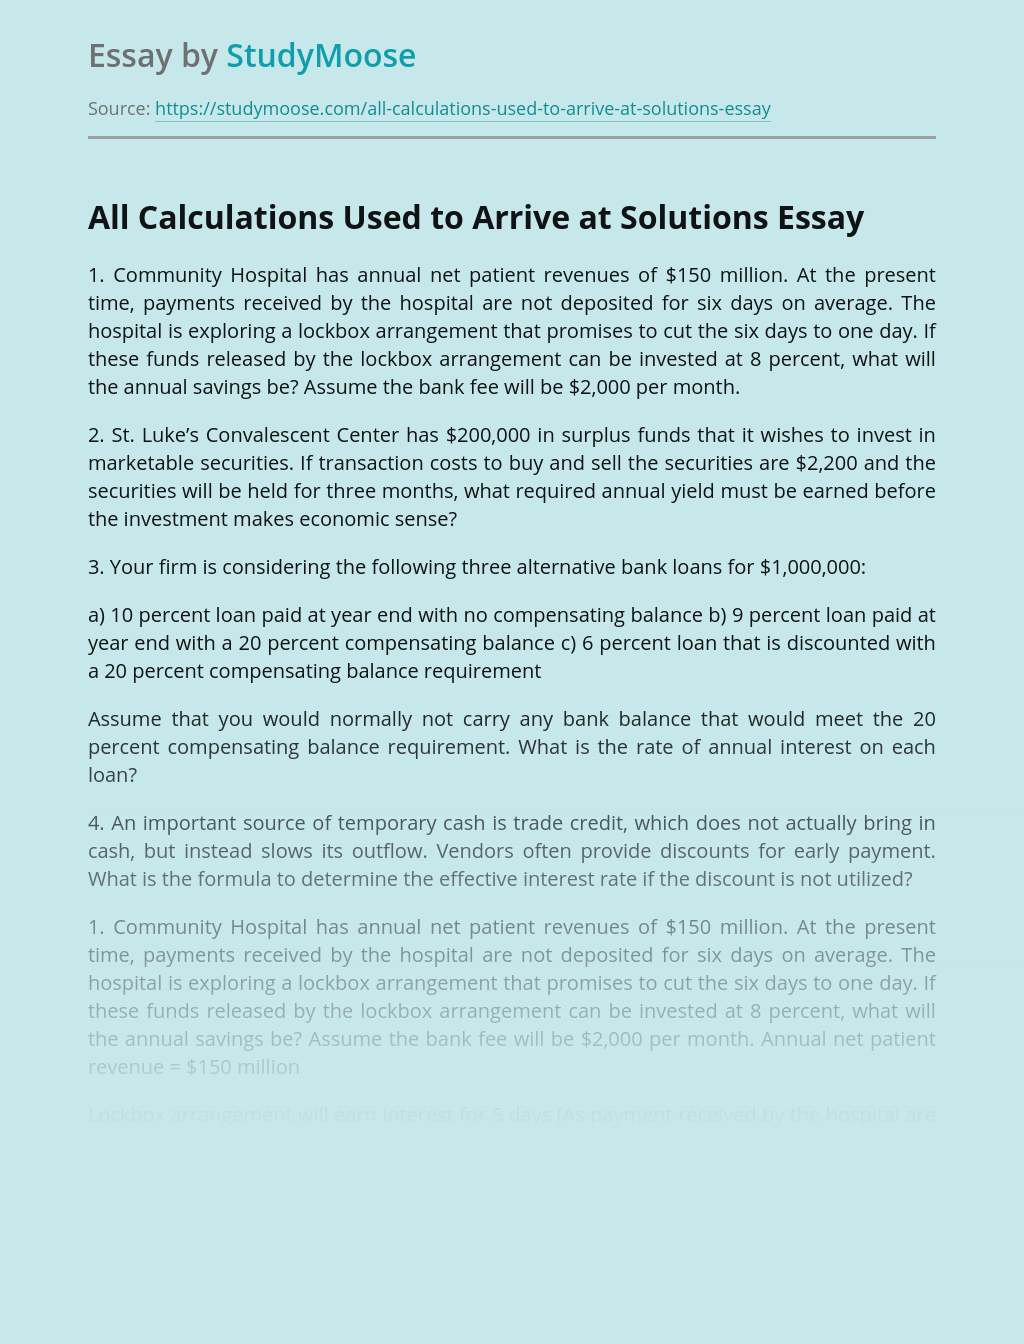 All Calculations Used to Arrive at Solutions